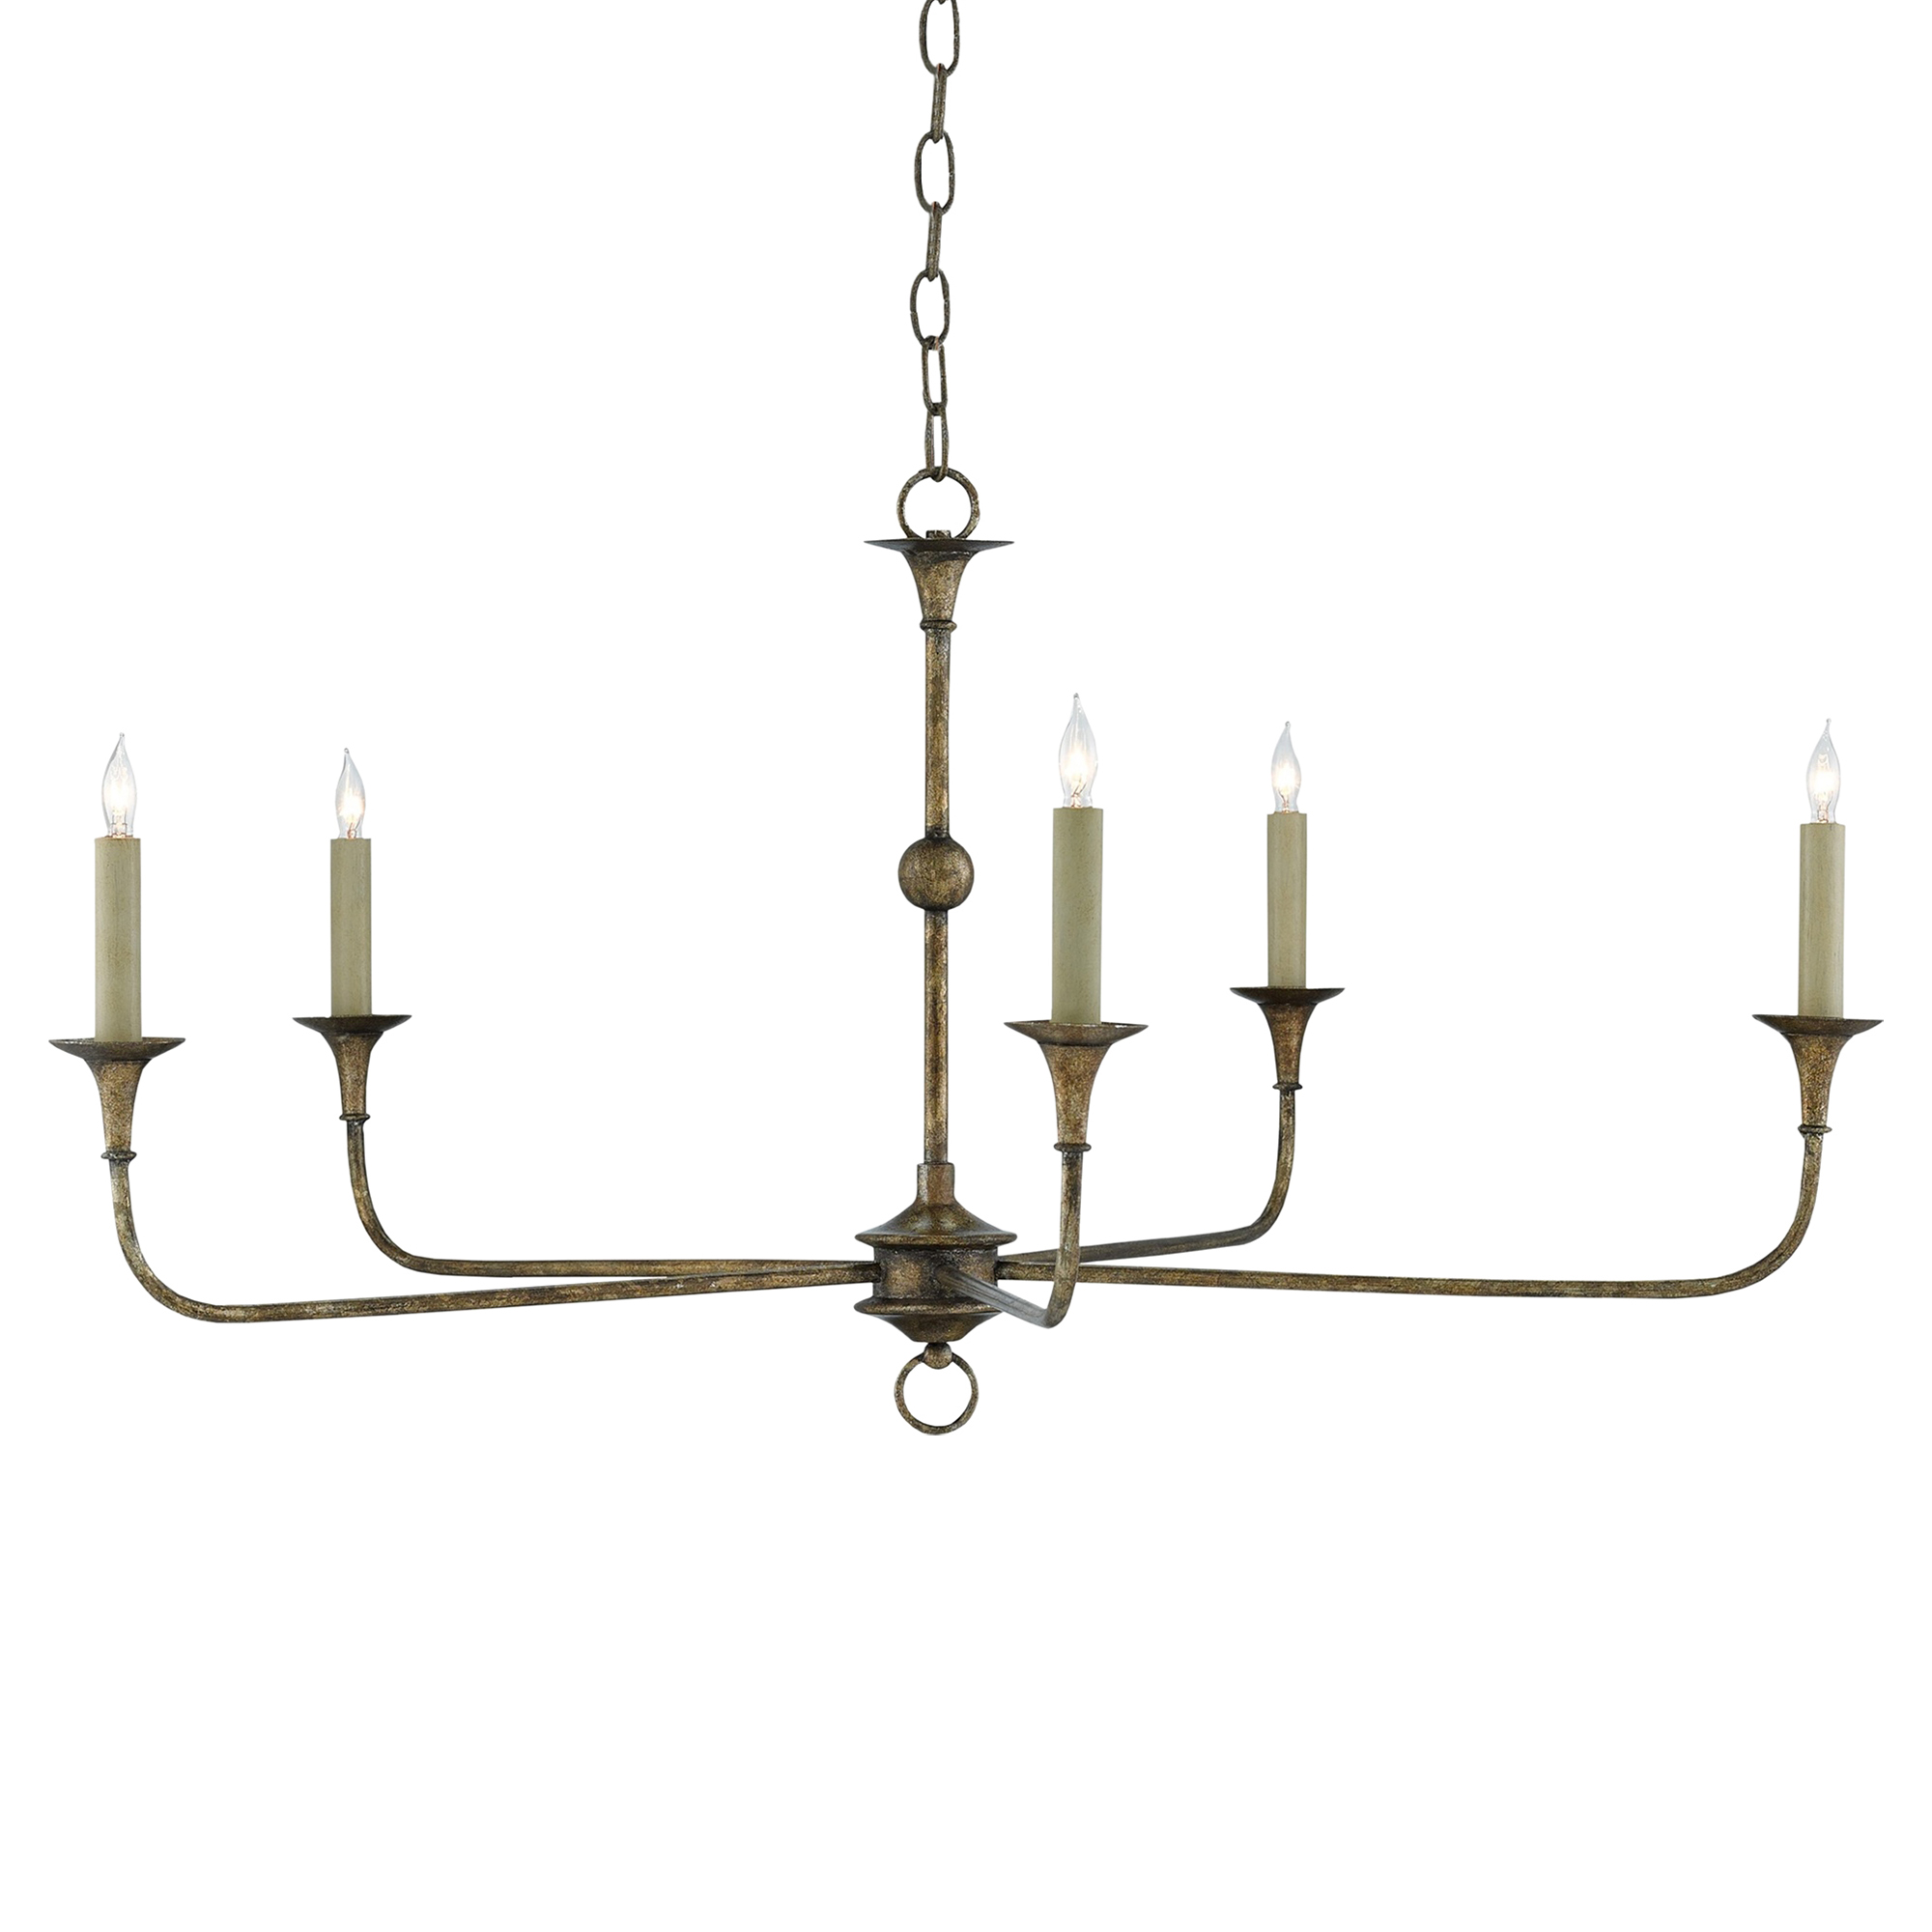 Designer chandeliers eclectic chandeliers kathy kuo home languedoc french country bronze wrought iron chandelier arubaitofo Images